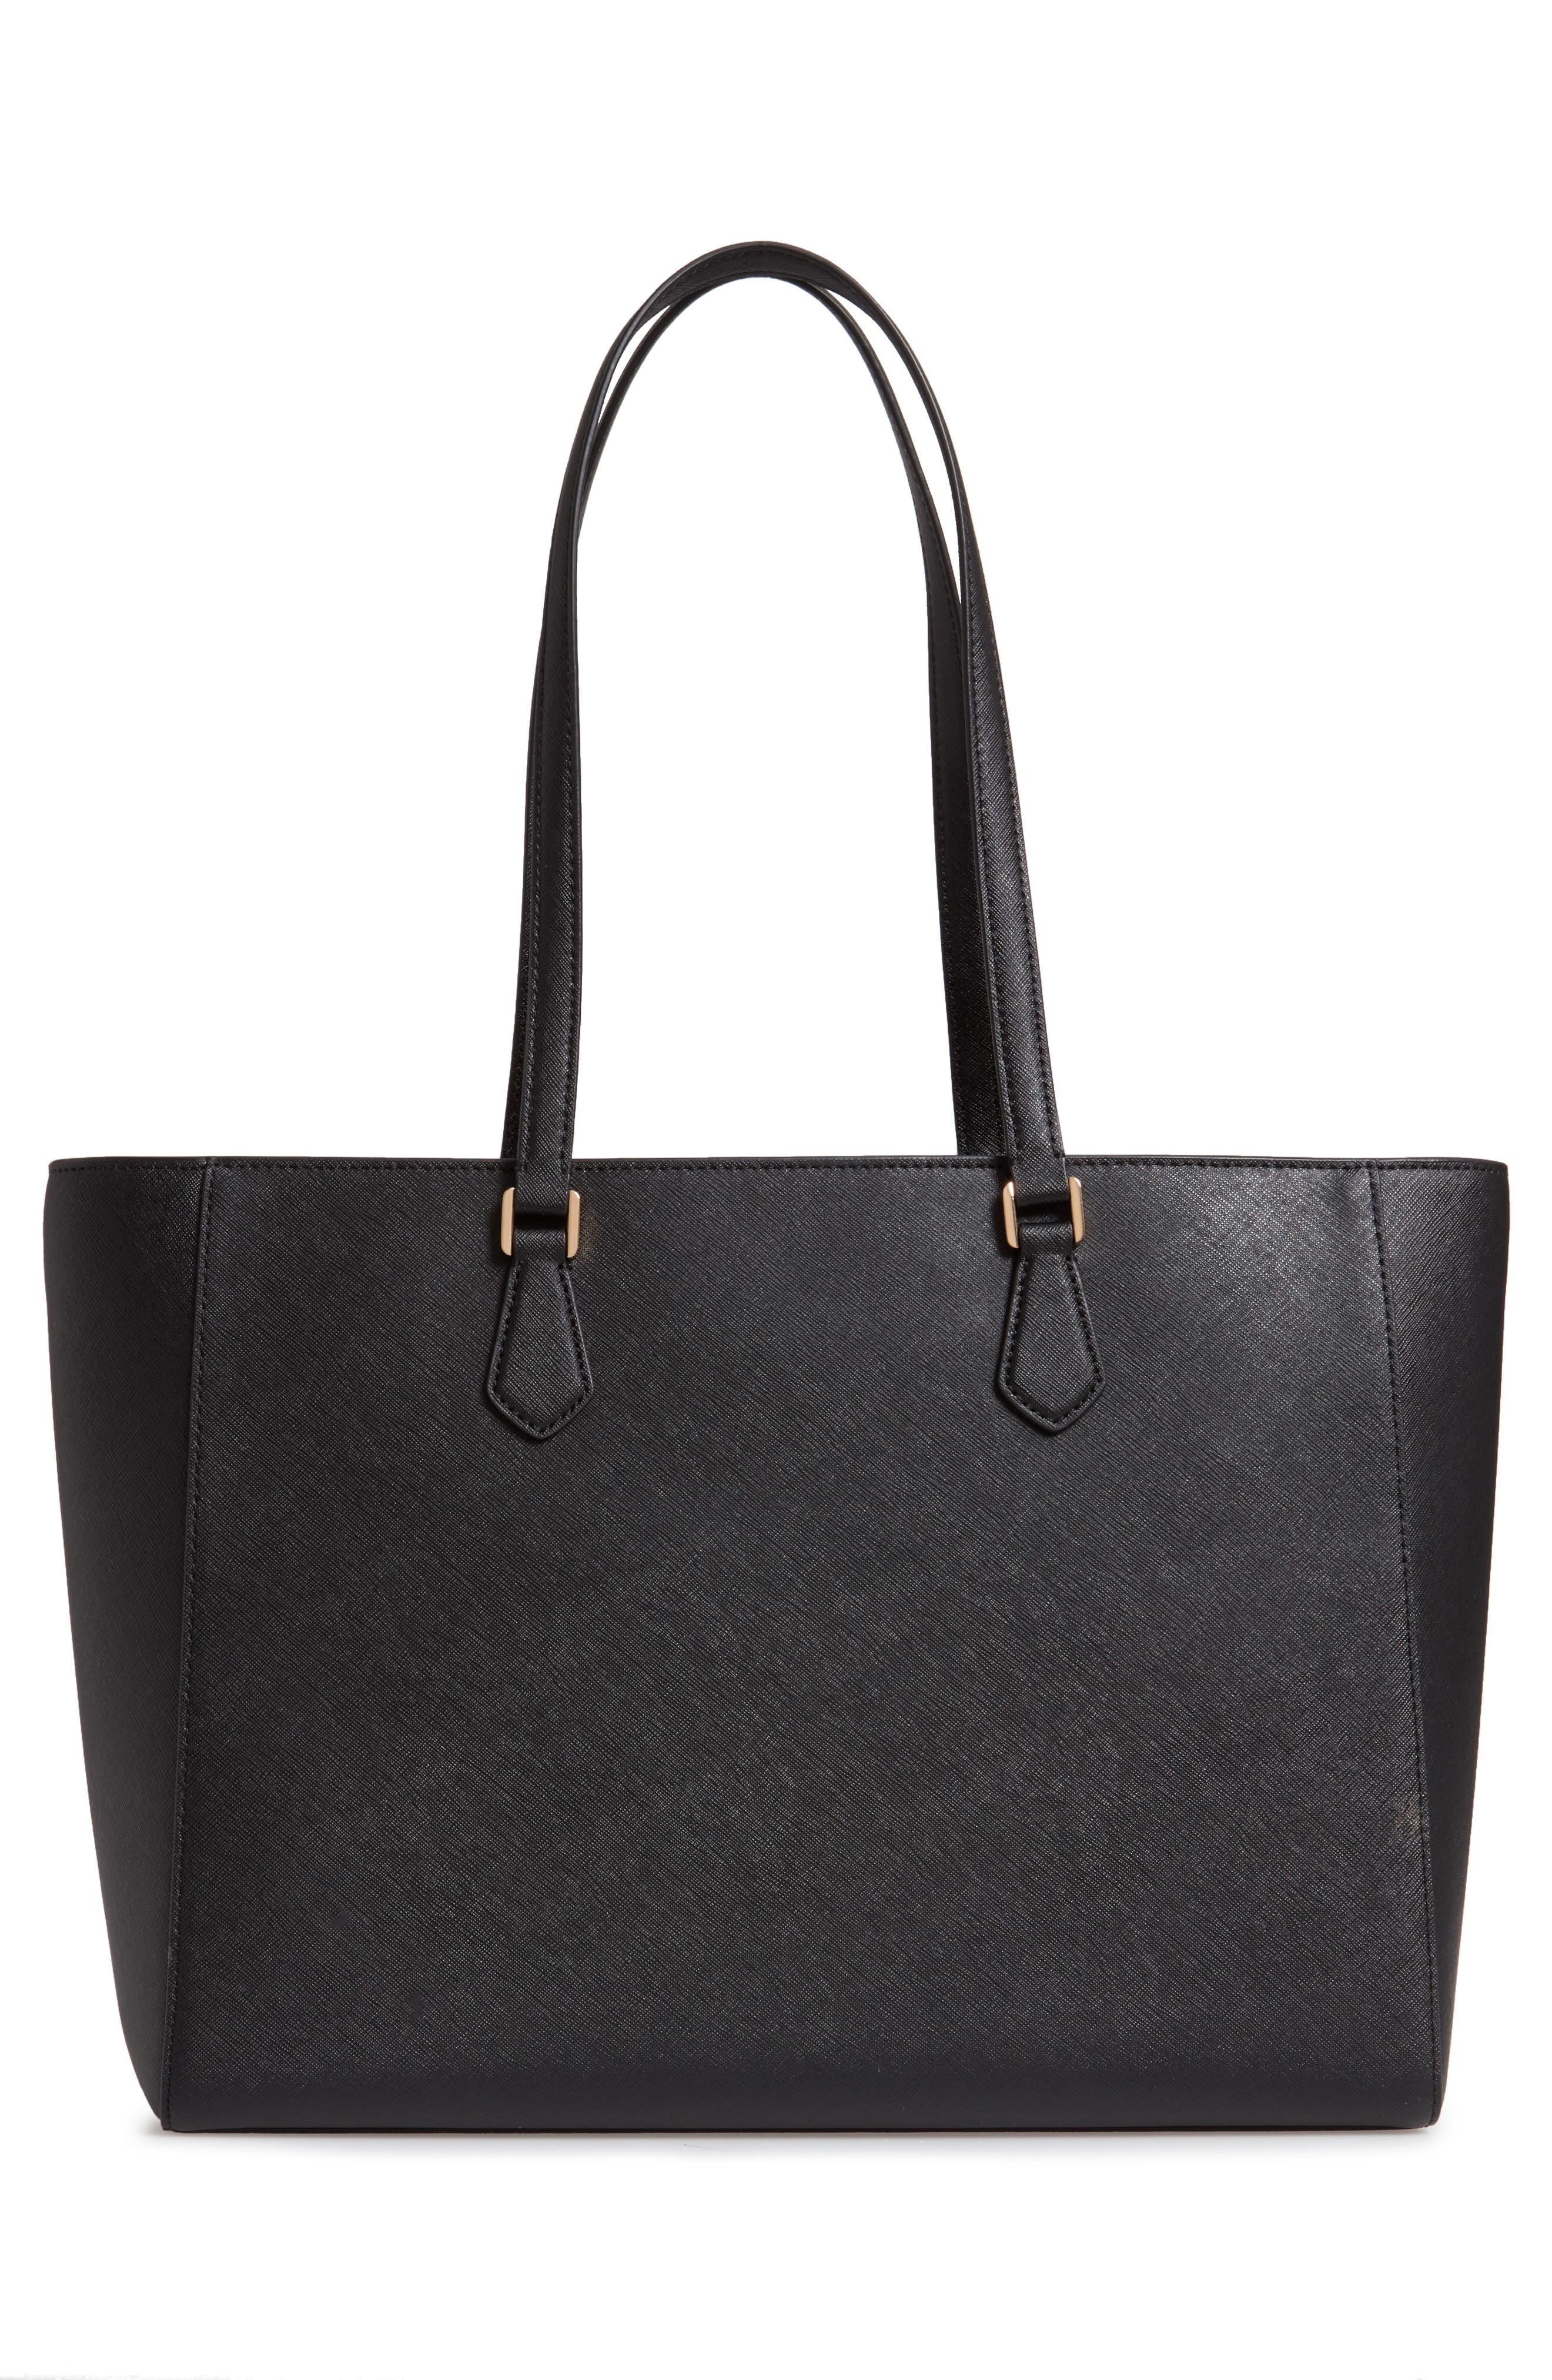 TORY BURCH, Robinson Saffiano Leather Tote, Alternate thumbnail 4, color, BLACK